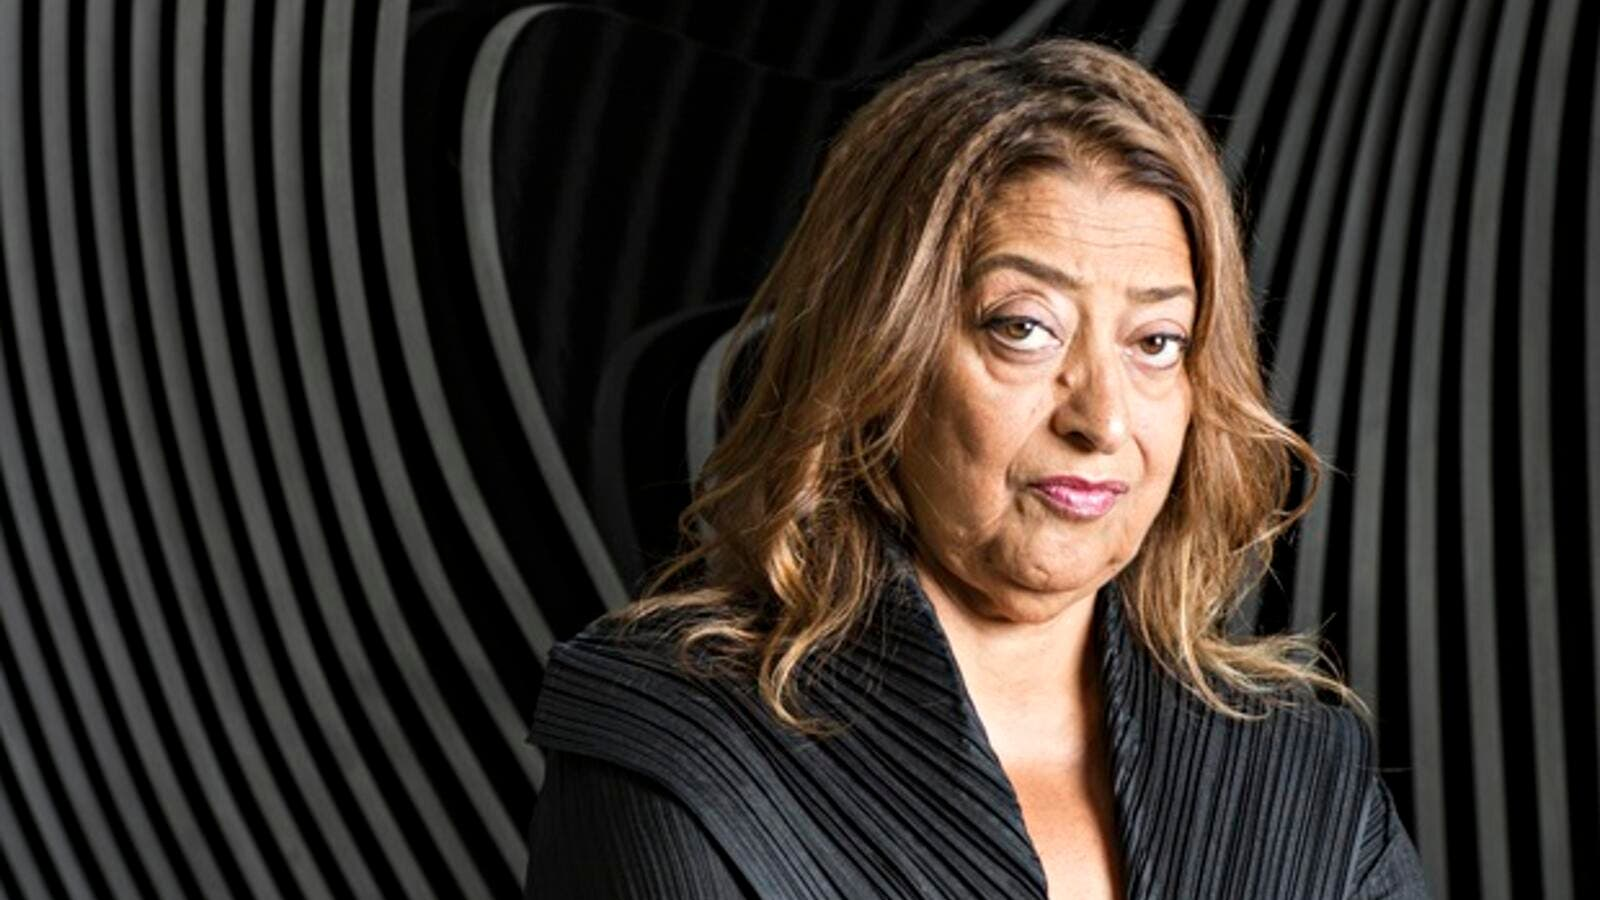 Zaha died suddenly in Miami in the early hours of Thursday morning. (Artjuice.net)